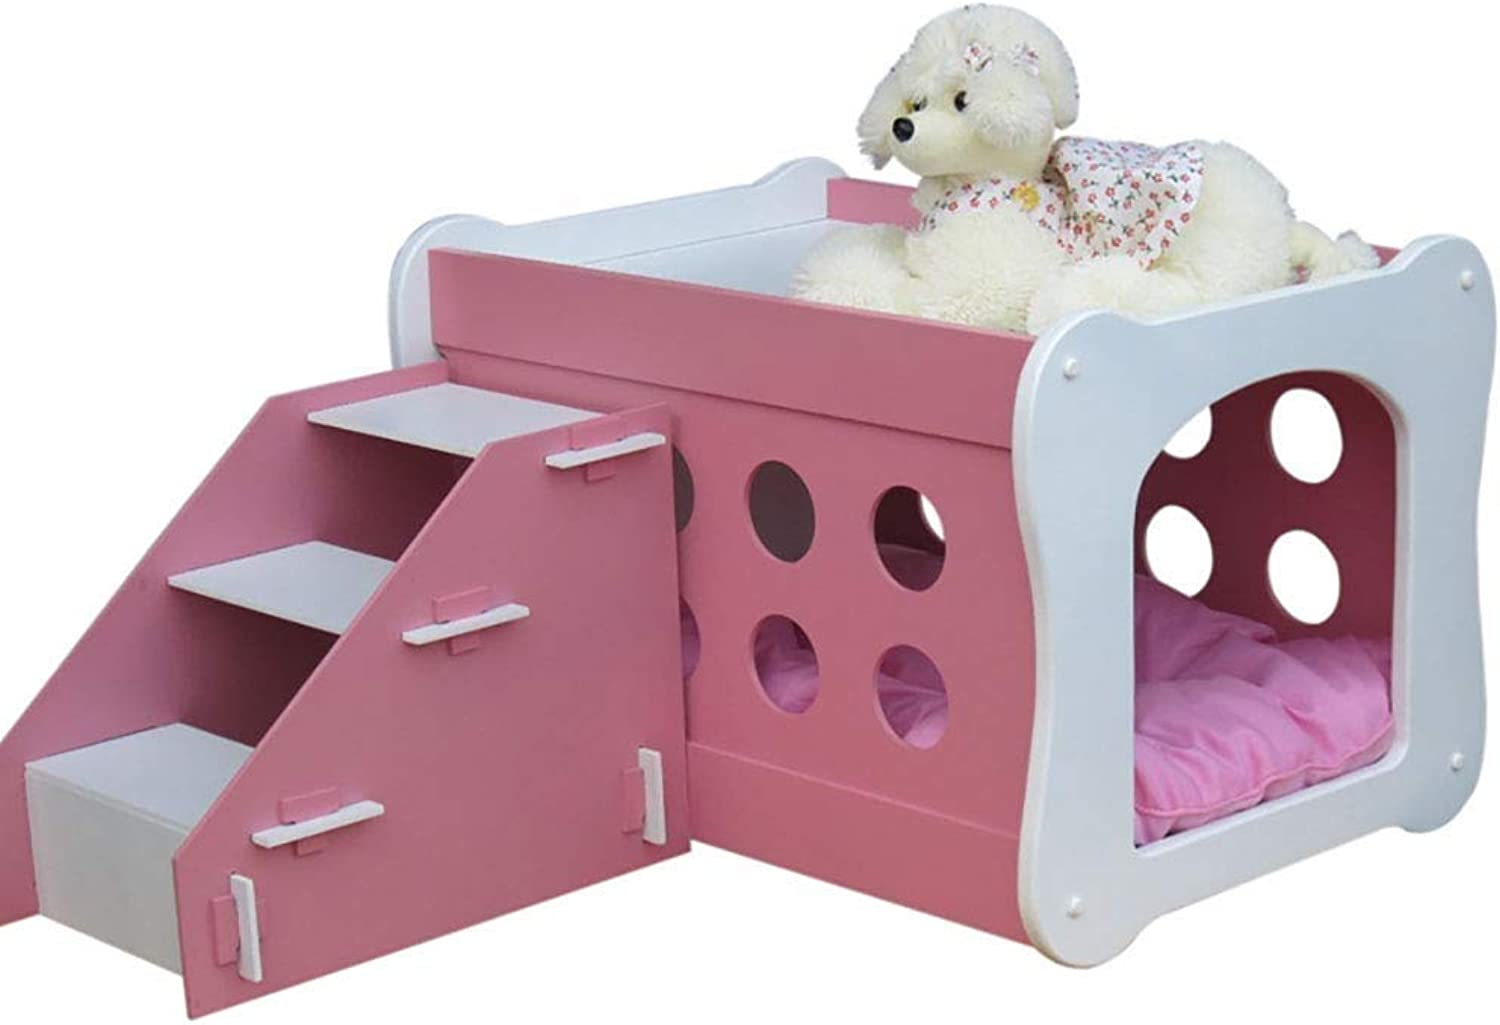 Pet stairs 2 Layer Dog Stair Wooden Pet House Puppy Cat, Pet Bed And Activity Stairs (color   Pink)